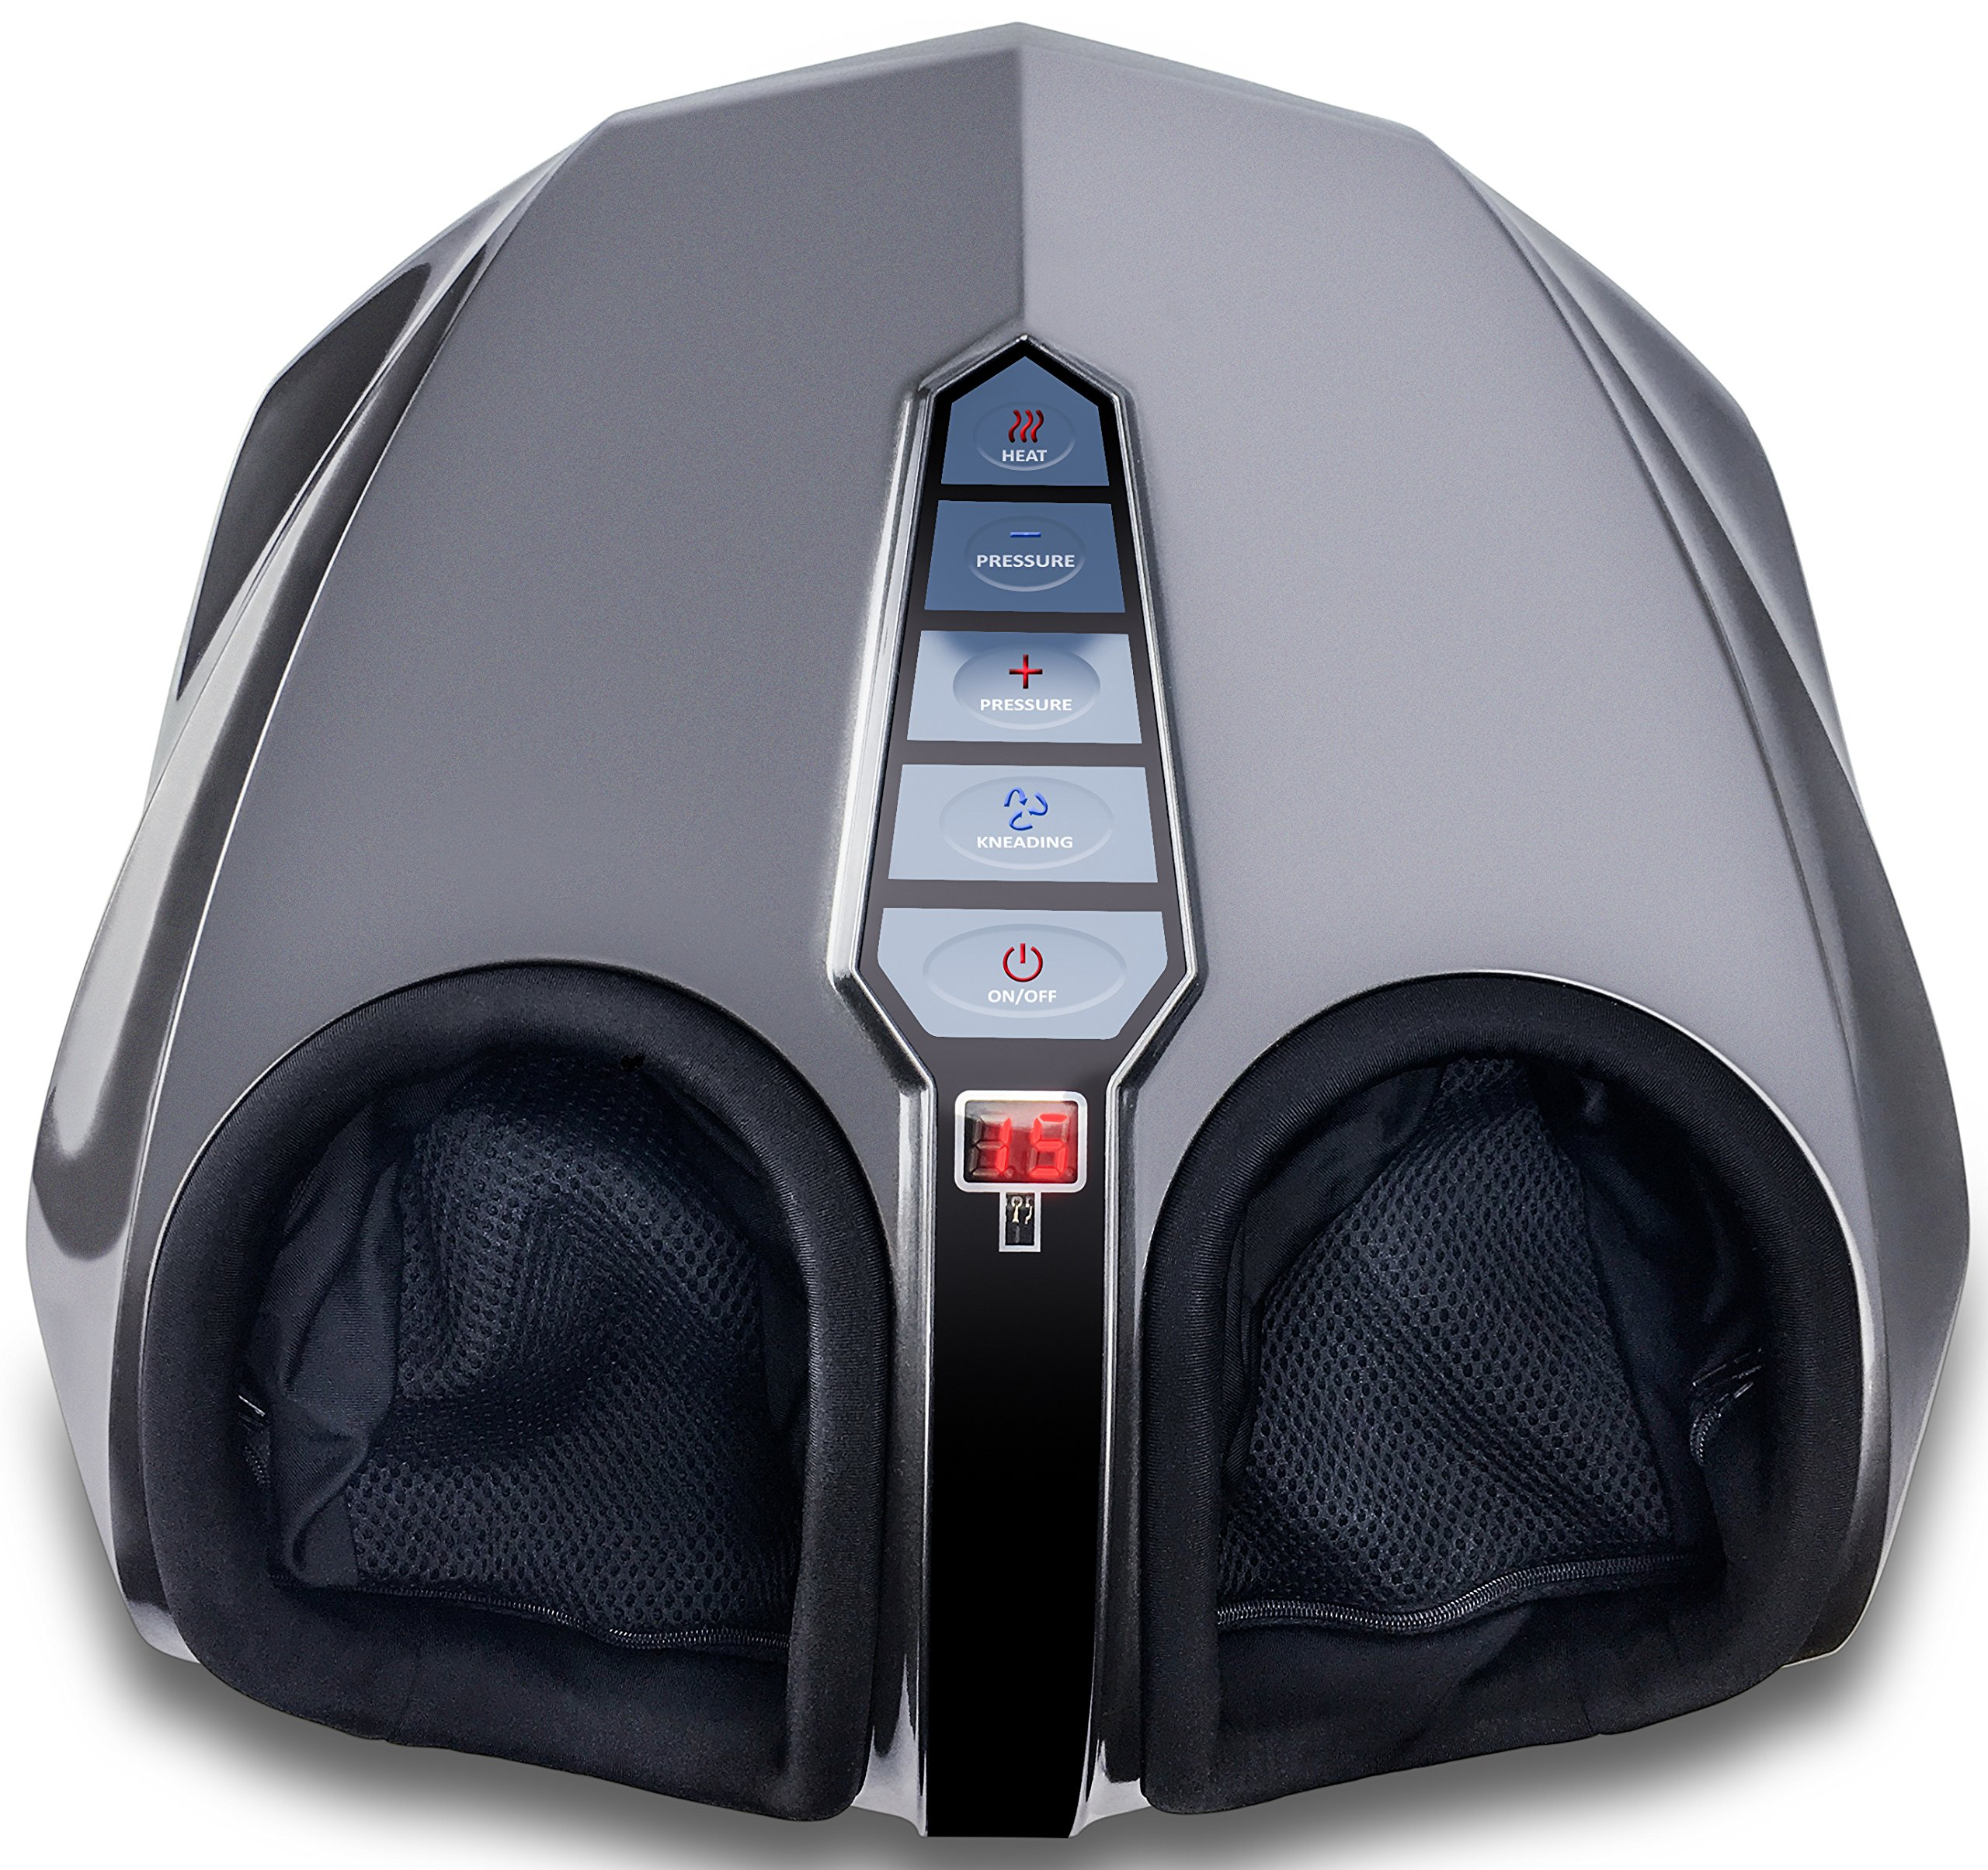 Miko Shiatsu Foot Massager With Deep-Kneading, Multi-Level Settings, And Switchable Heat Charcoal Grey by Miko